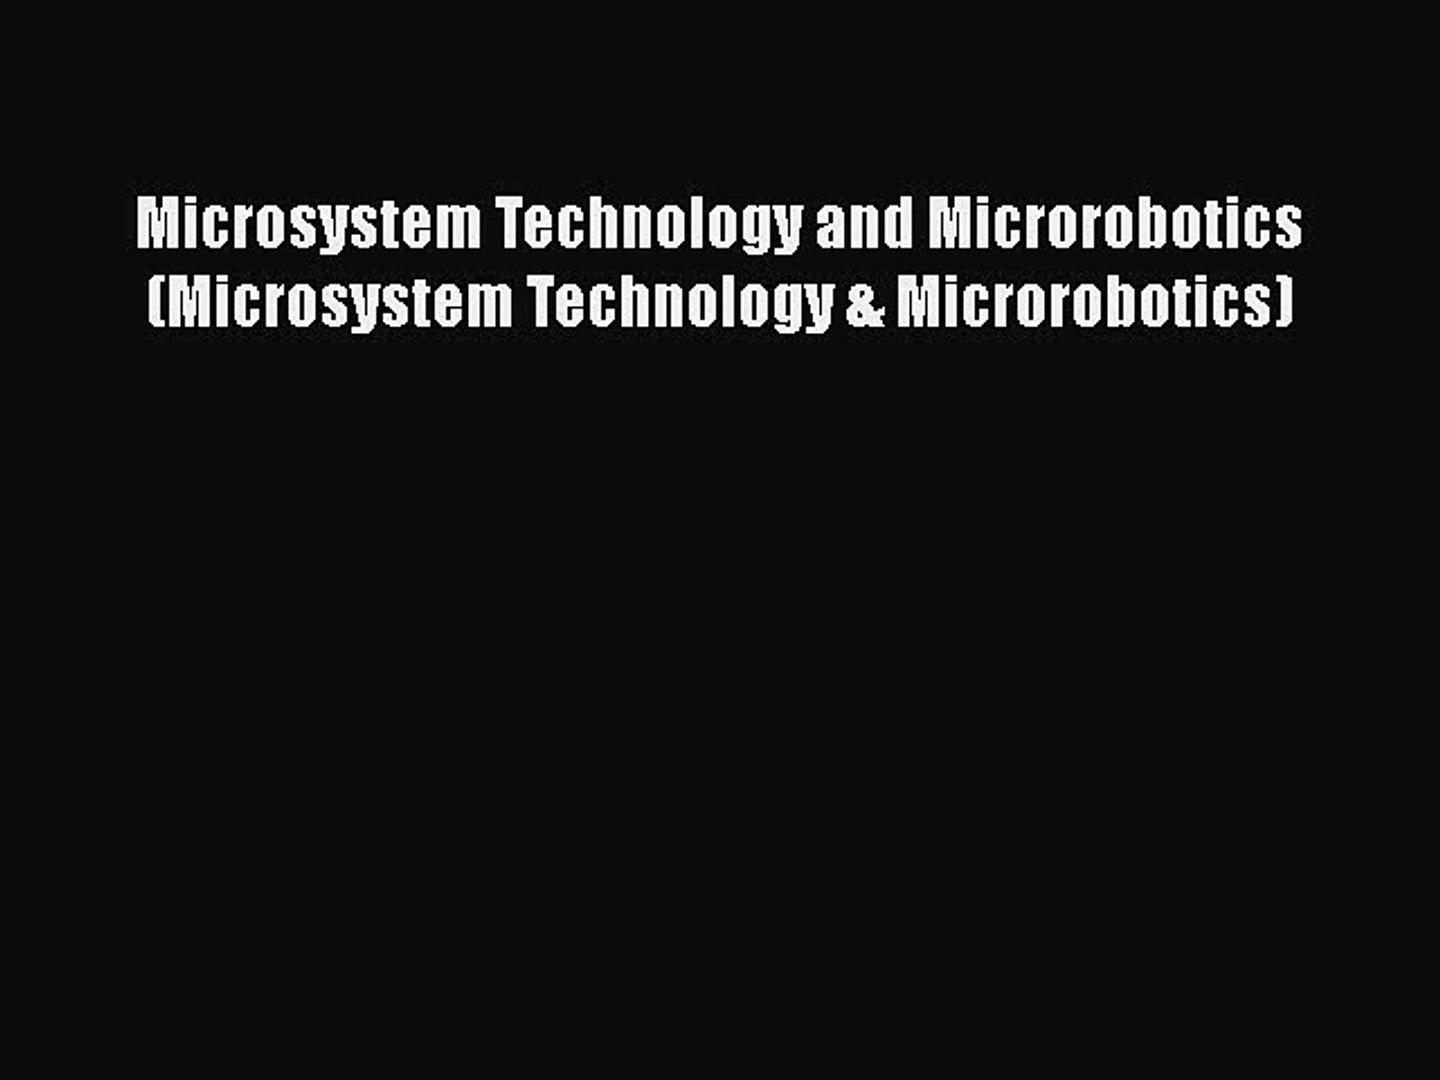 Download Microsystem Technology and Microrobotics (Microsystem Technology & Microrobotics)